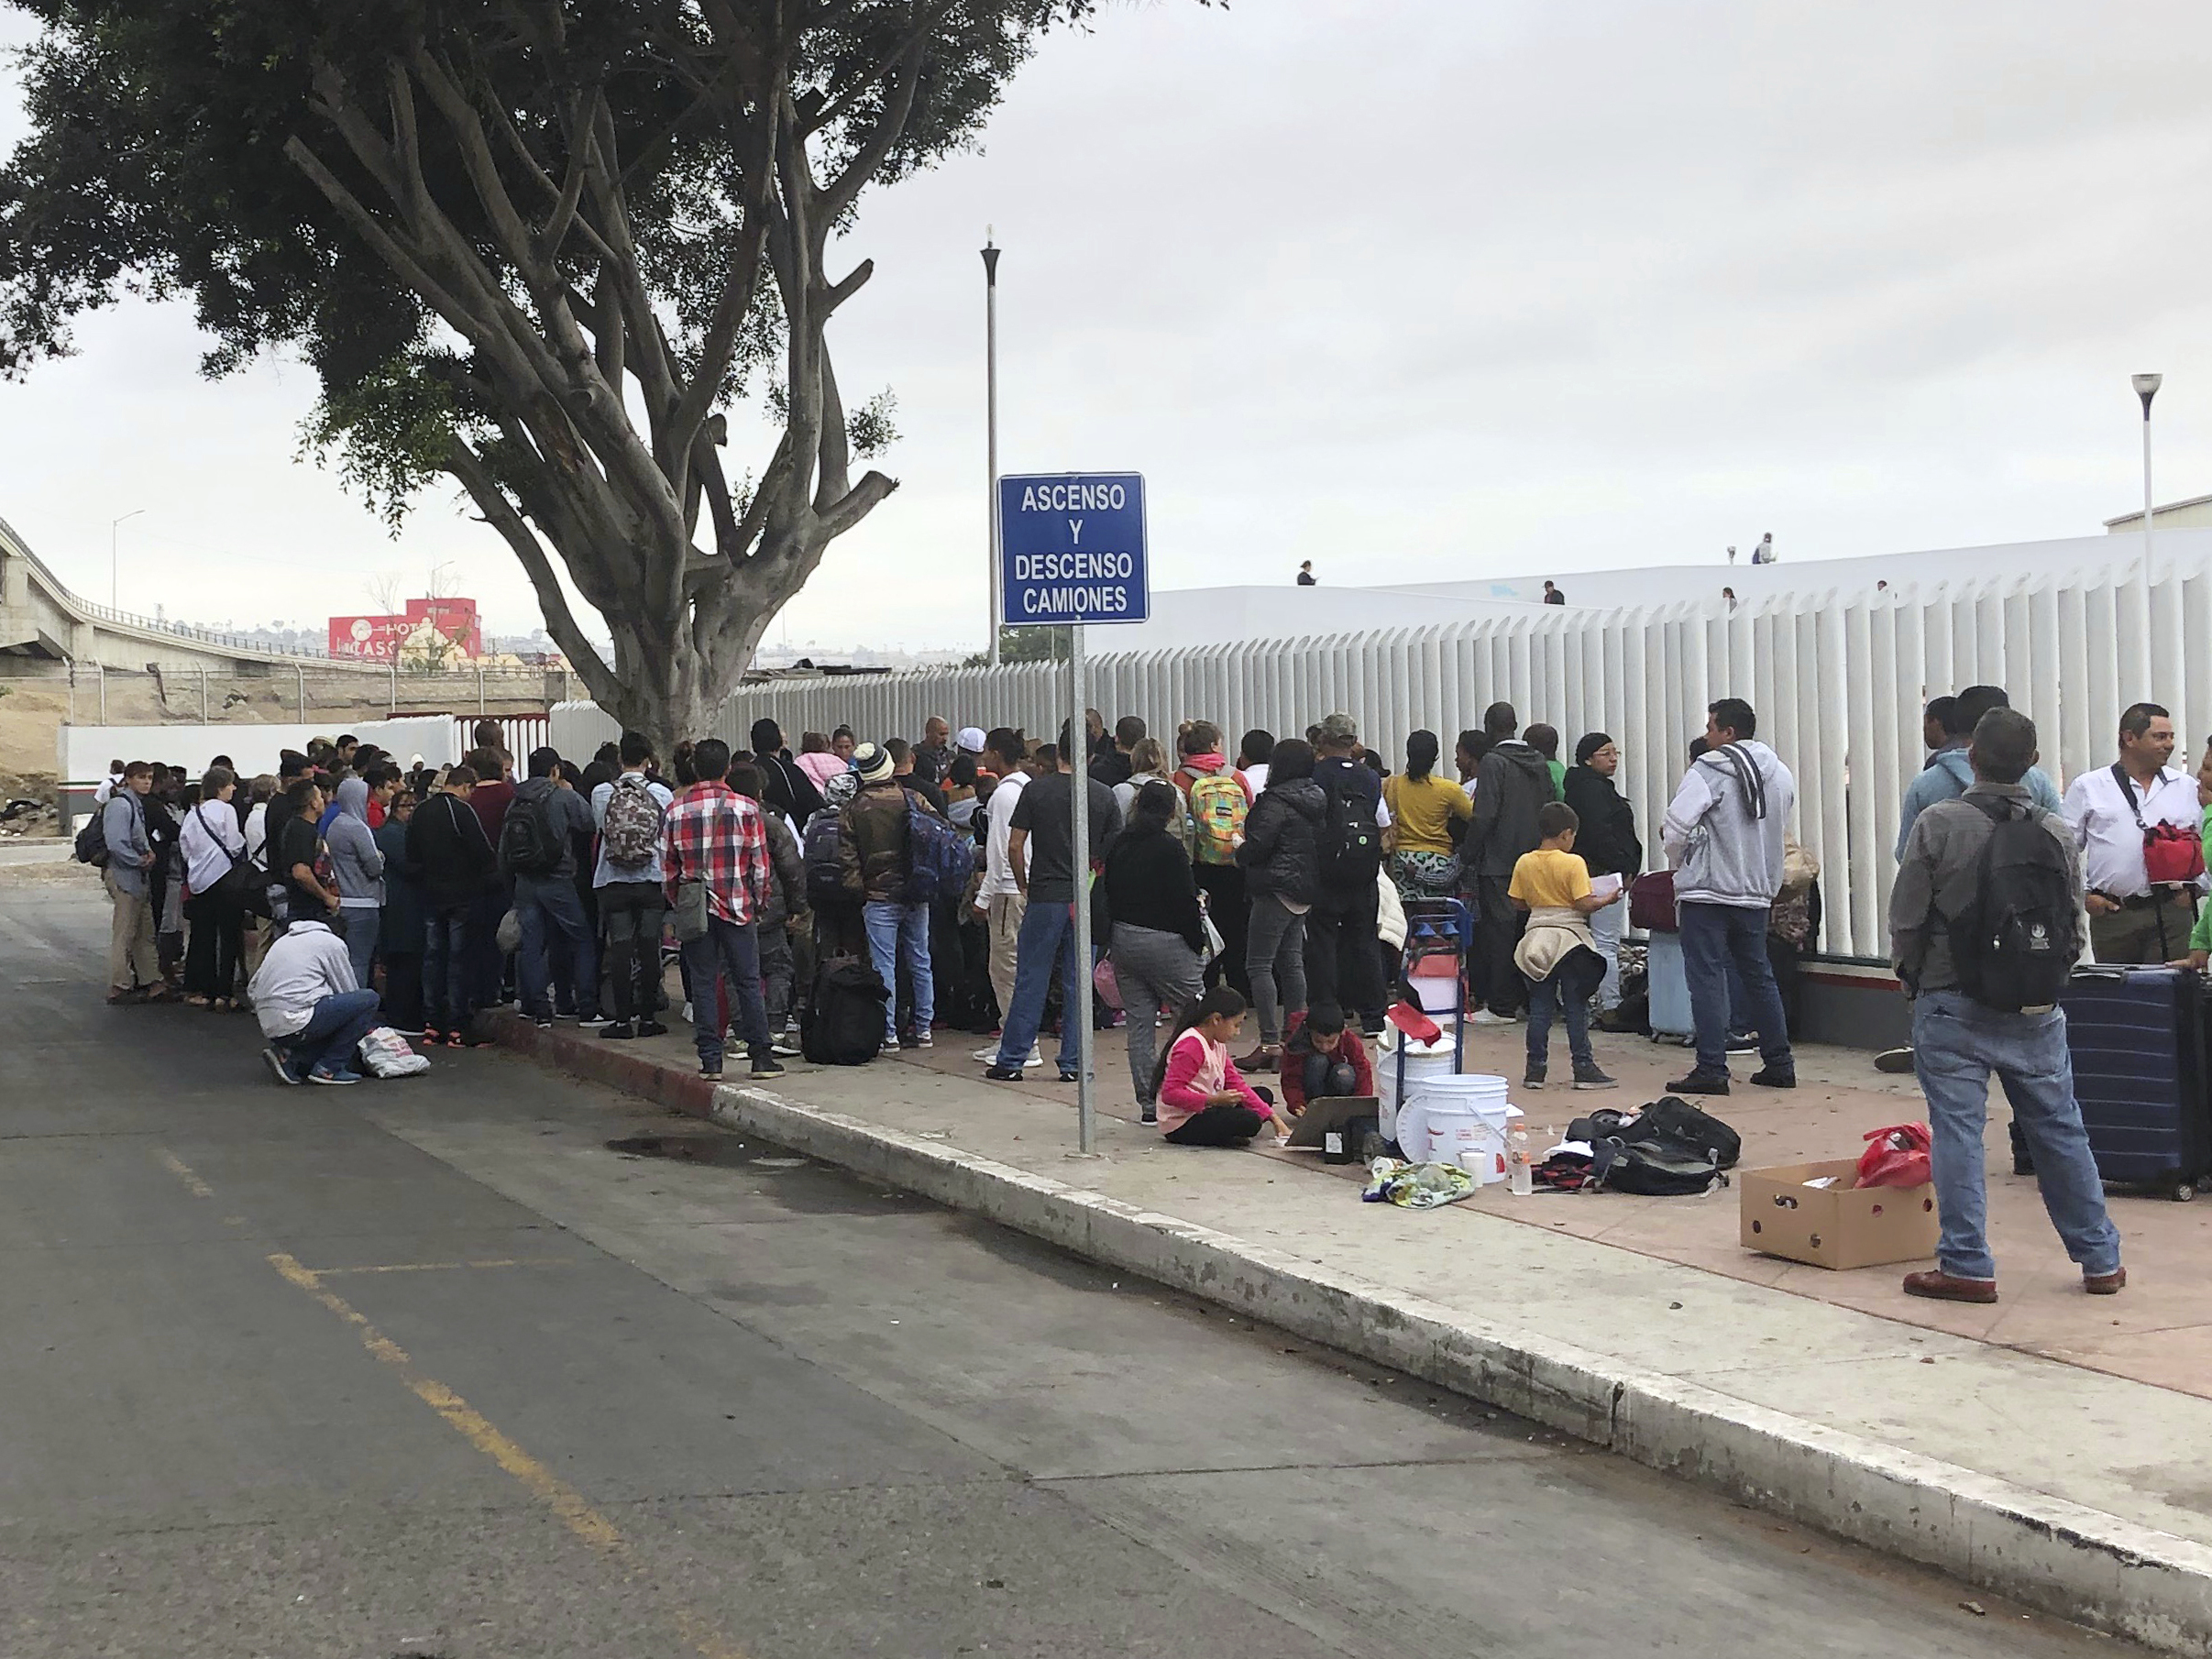 As Border Apprehensions Decline For 5th Consecutive Month, Migrants Change Too